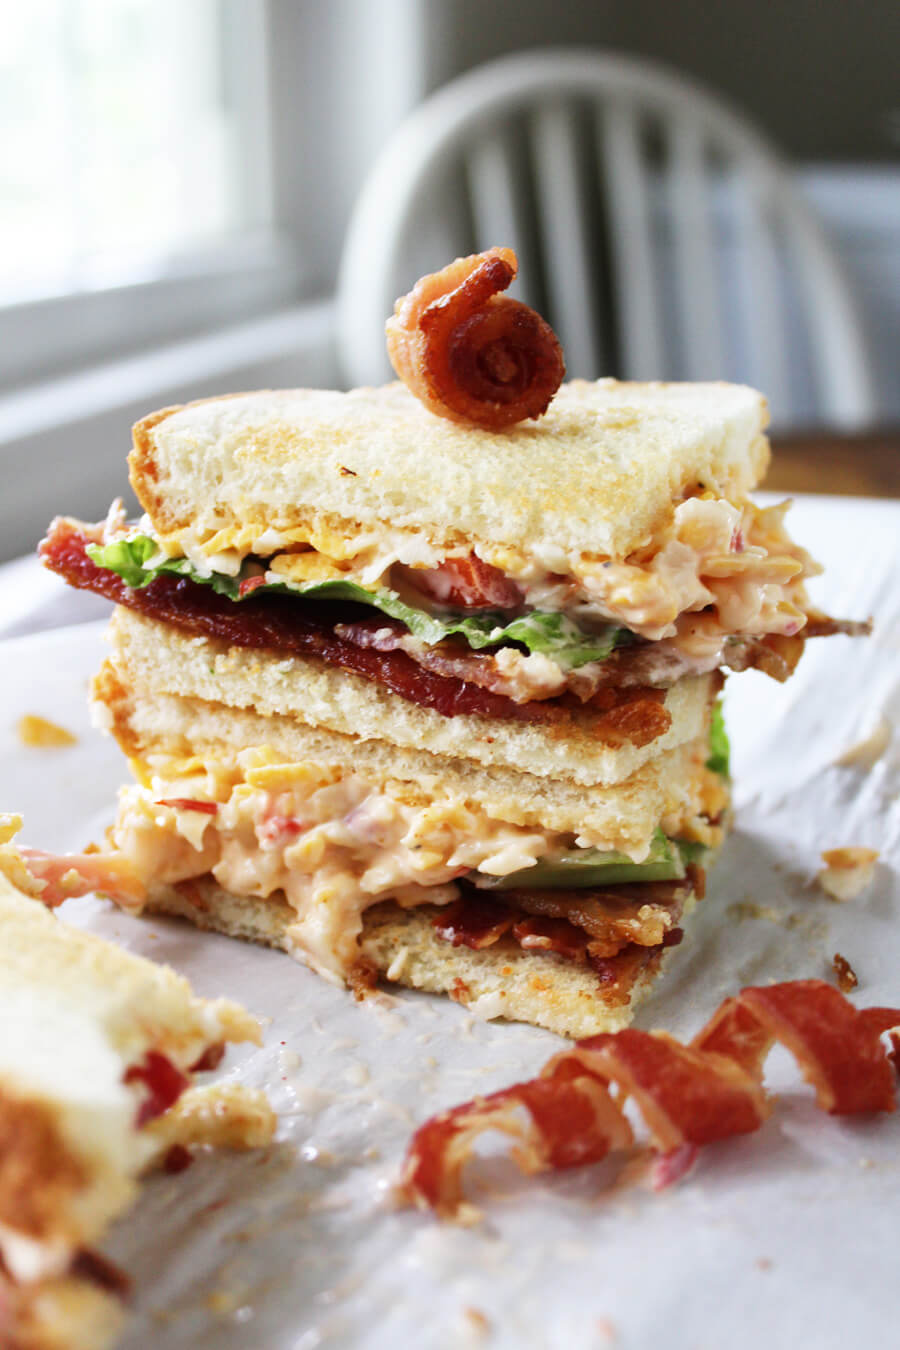 Pimento Cheese BLT's - A southern classic tailgate recipe